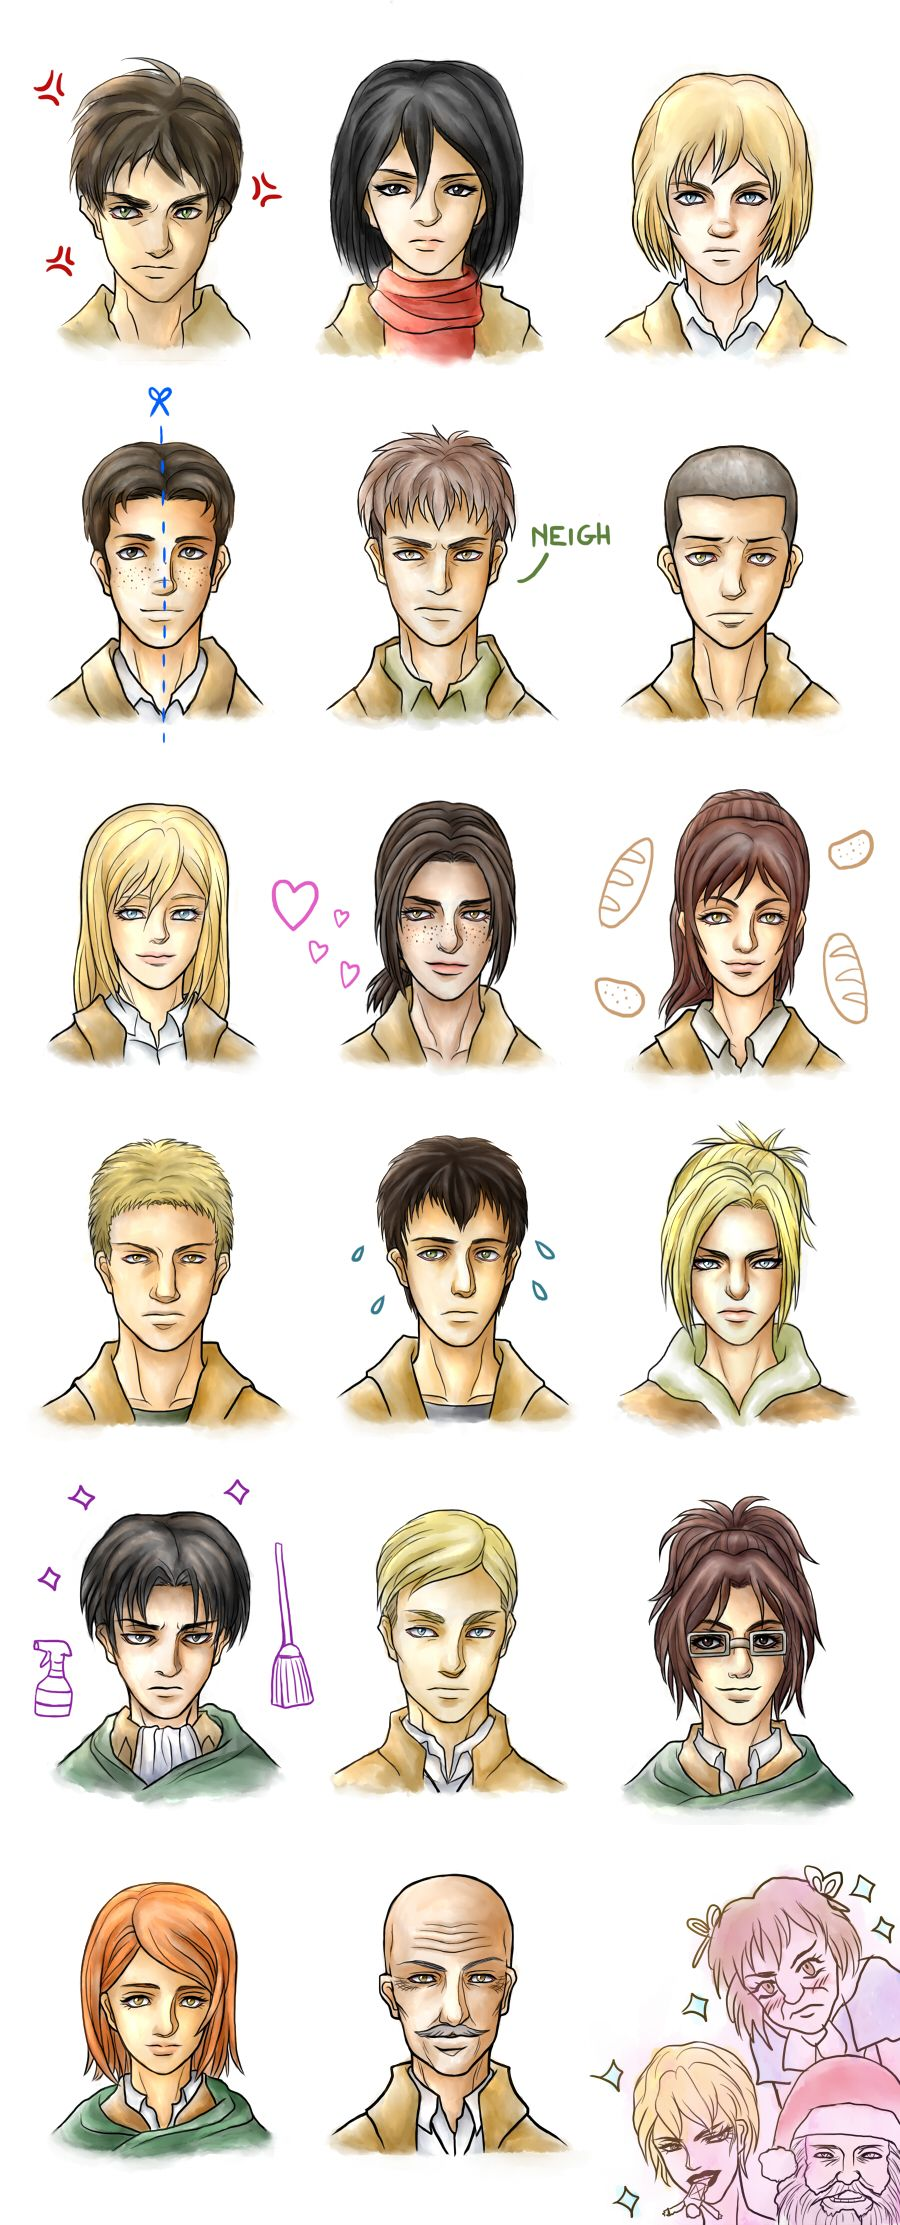 Attack on Titan characters by Asenath23 on DeviantArt